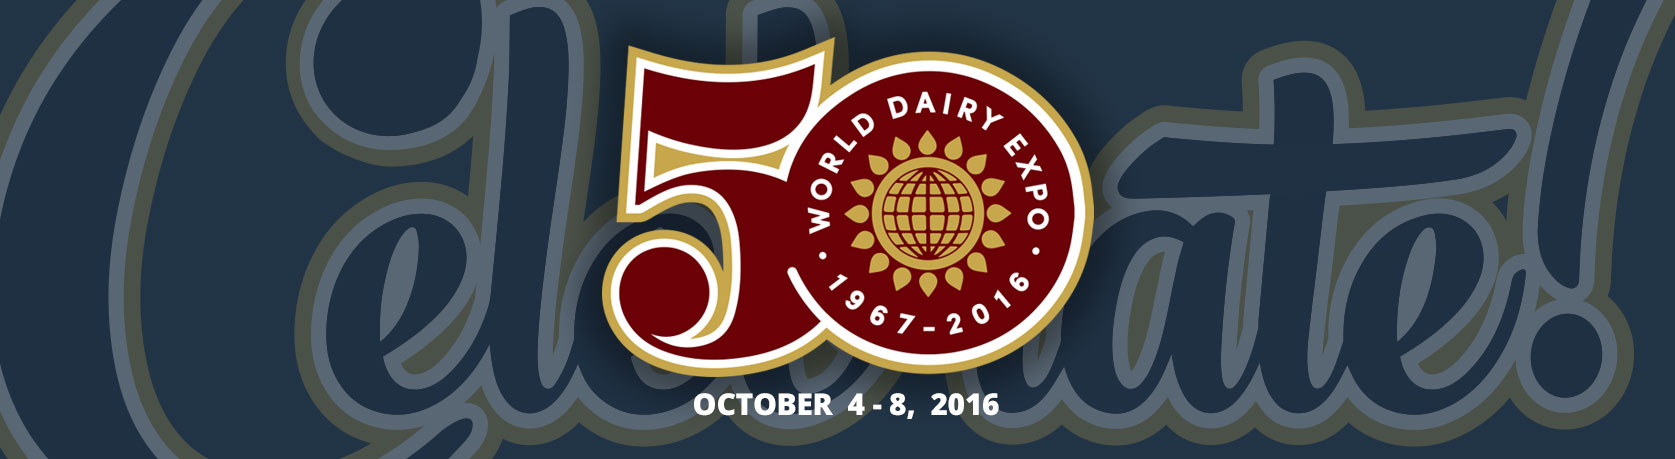 Celebrate 50 - World Dairy Expo - October 4 - 8